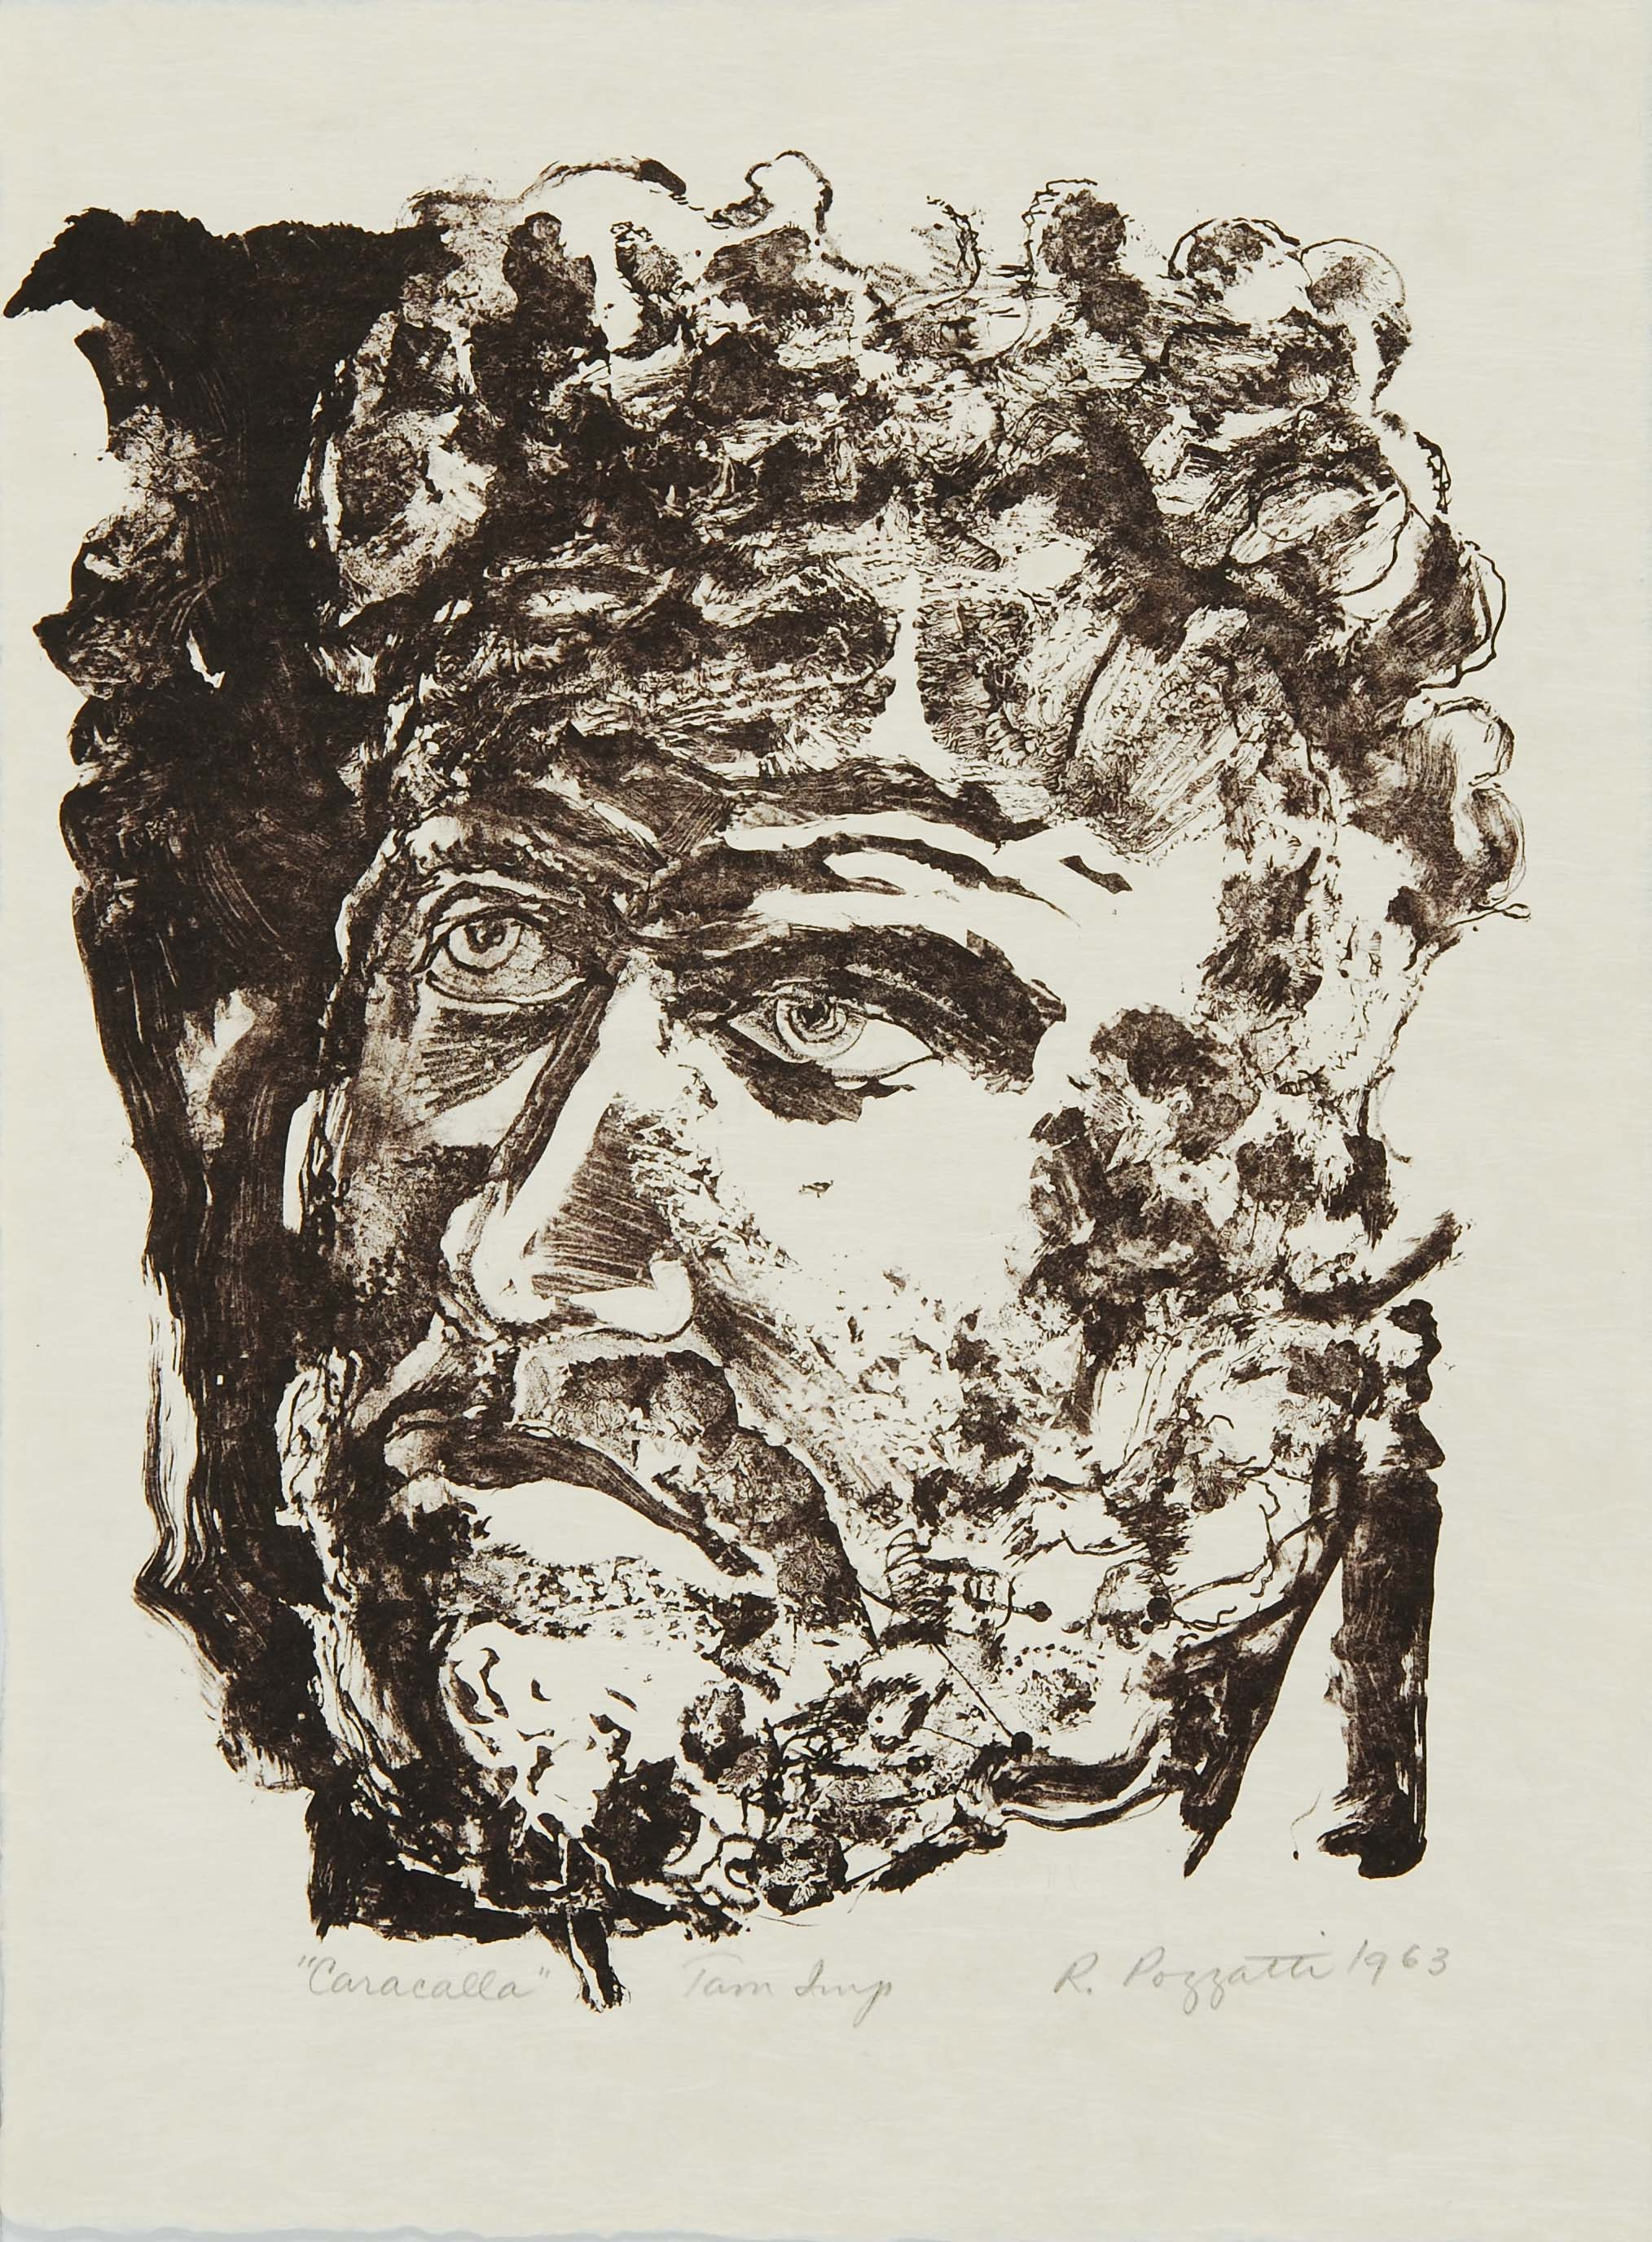 John Rock, Caracalla, January 15, 1963 - April 5, 1963